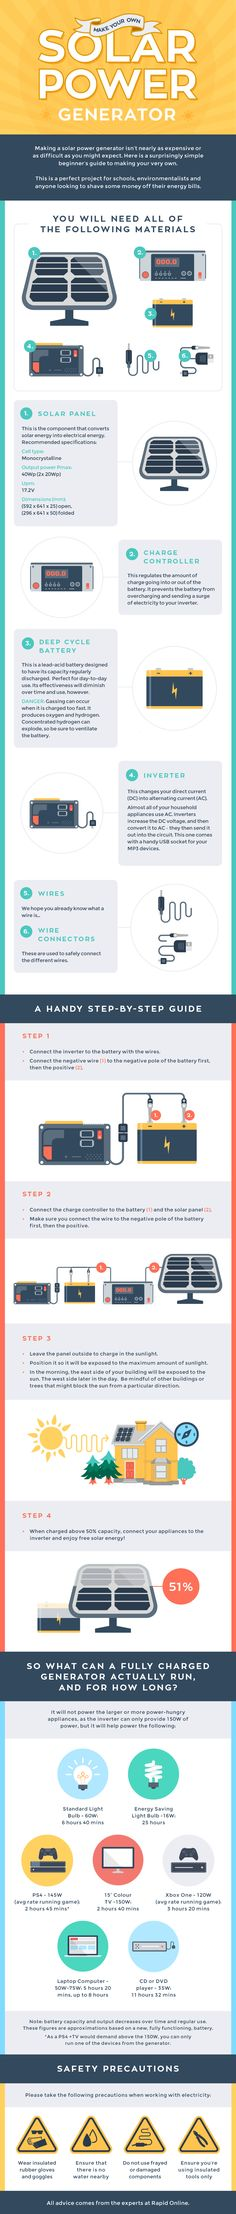 Build your own solar power generator : via http://www.electronicsweekly.com/gadget-master/general/build-solar-power-generator-infographic-2014-05/ : http://static.electronicsweekly.com/gadget-master/wp-content/uploads/sites/4/2014/05/DIY-Solar-Panel-Infographic.jpg